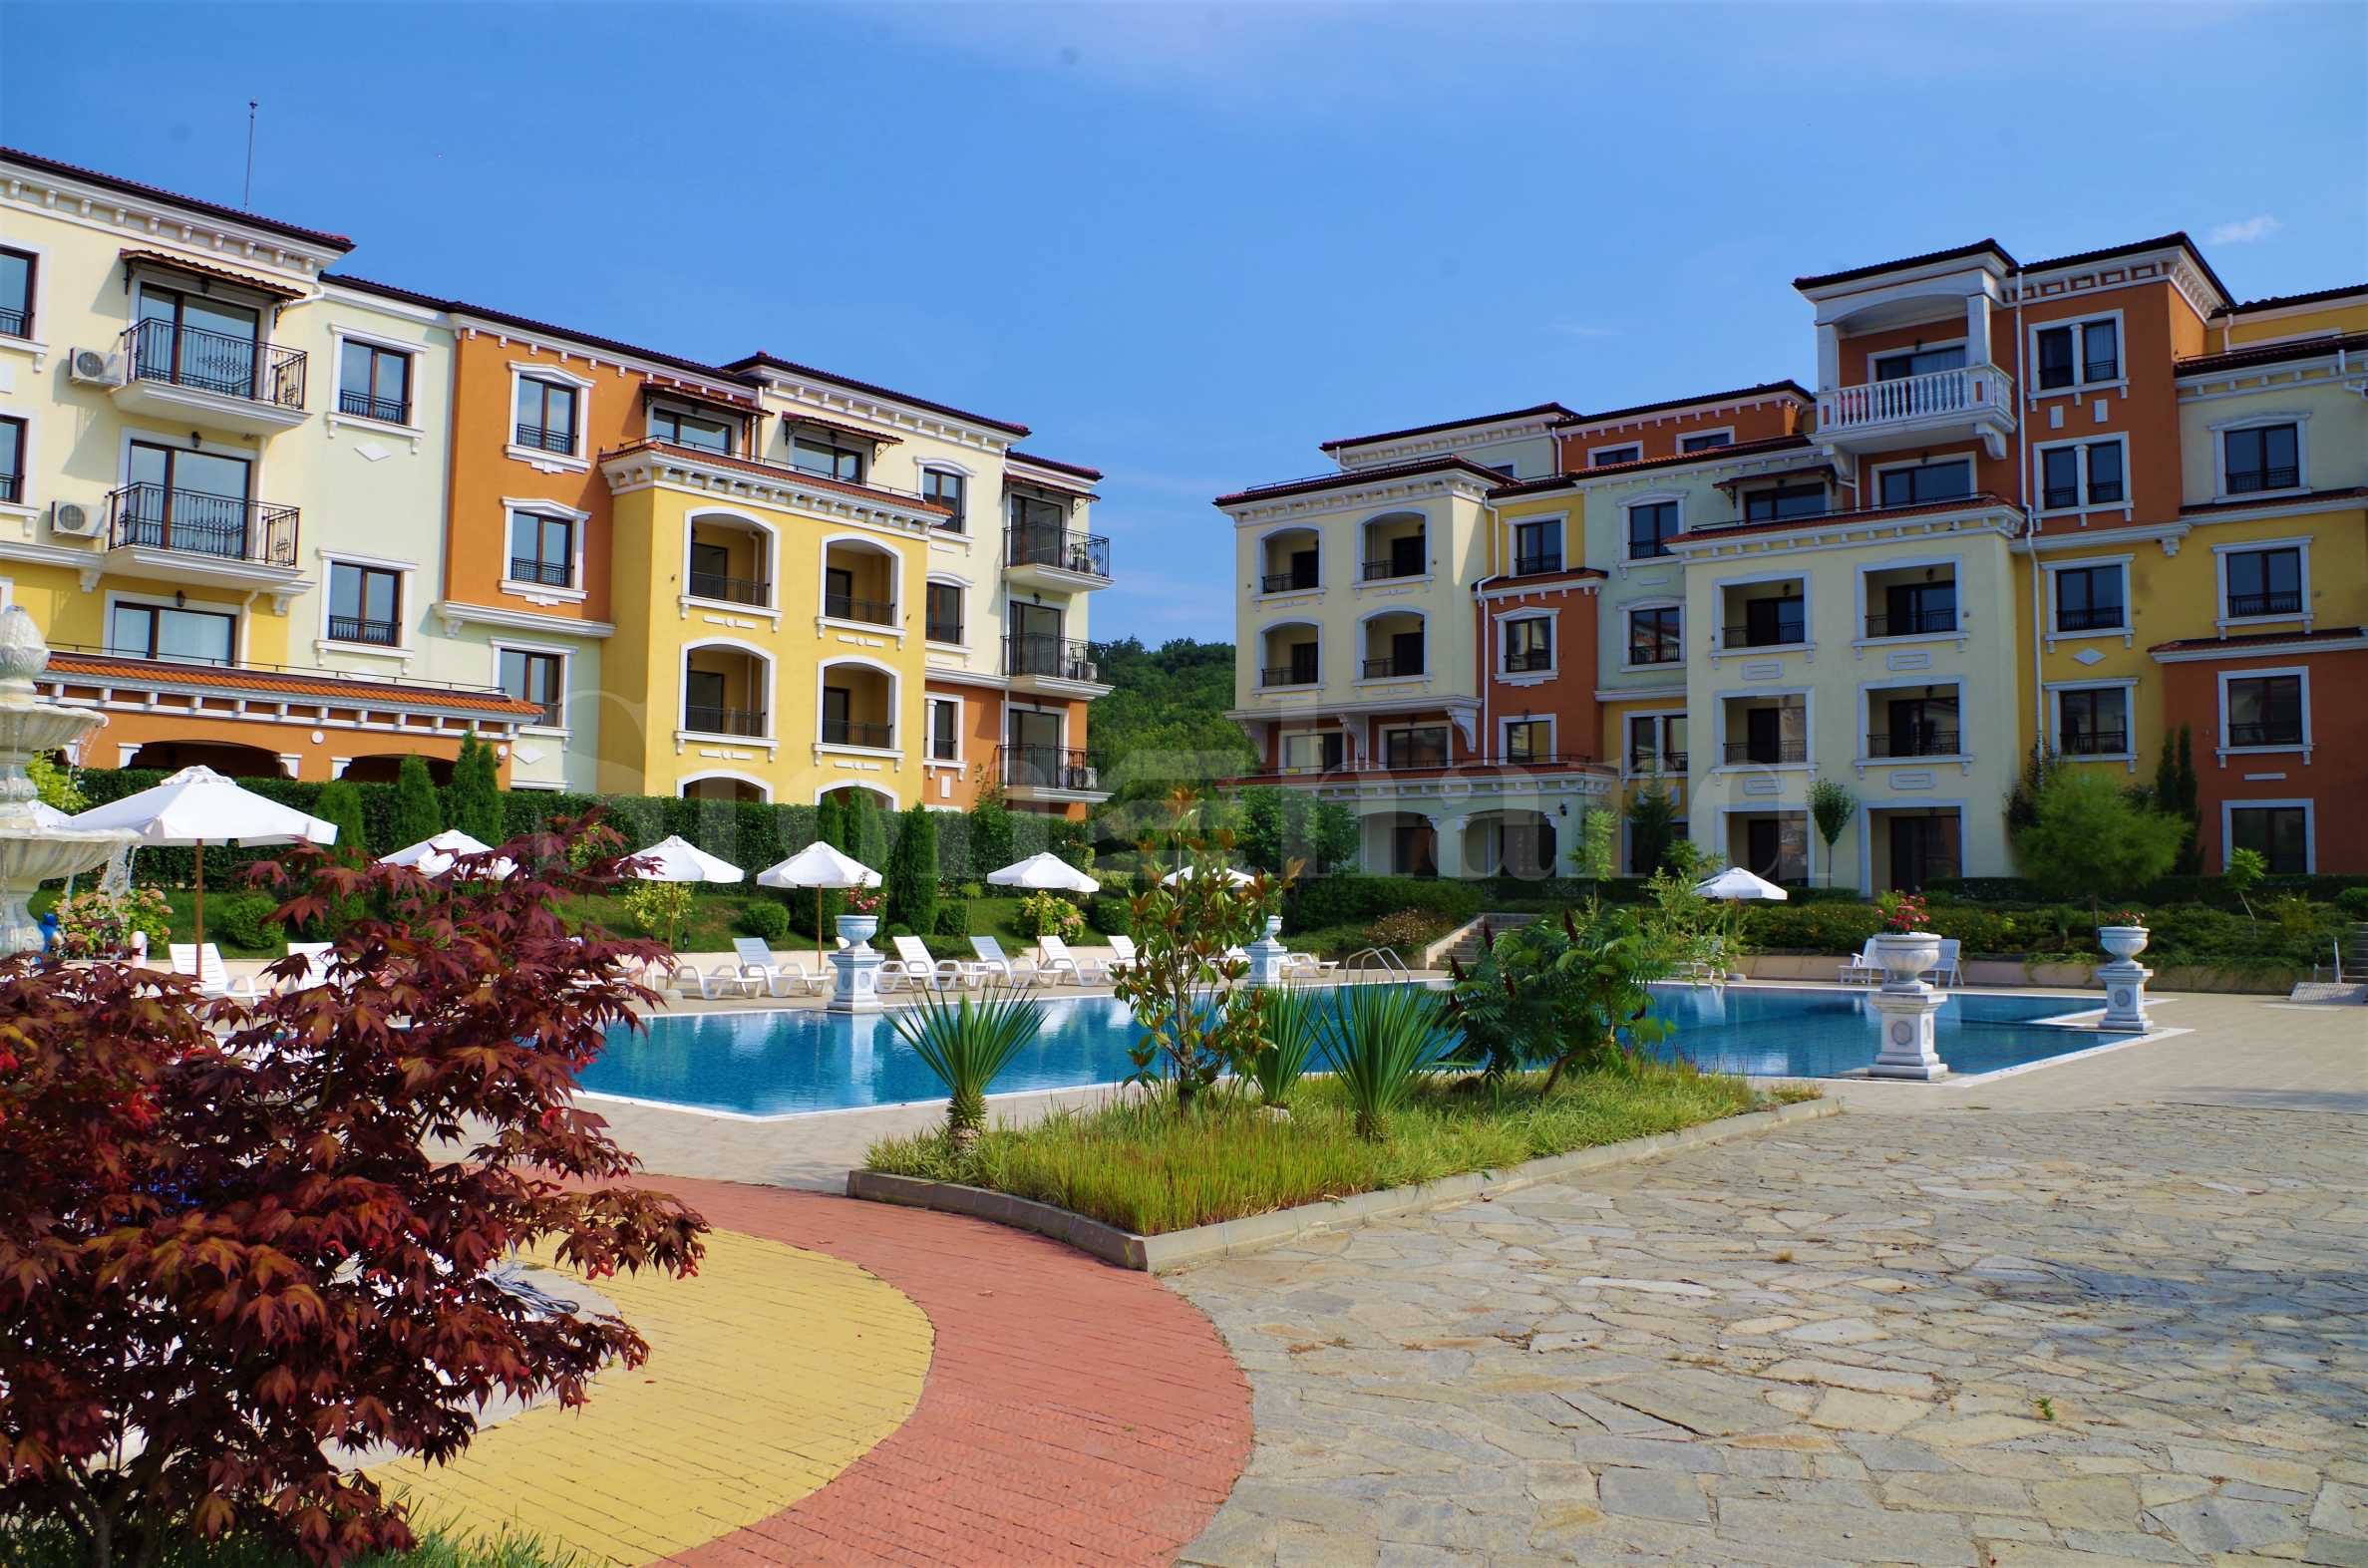 Lily Beach - splendid, built in Italian style complex near Kavatsi beach1 - Stonehard